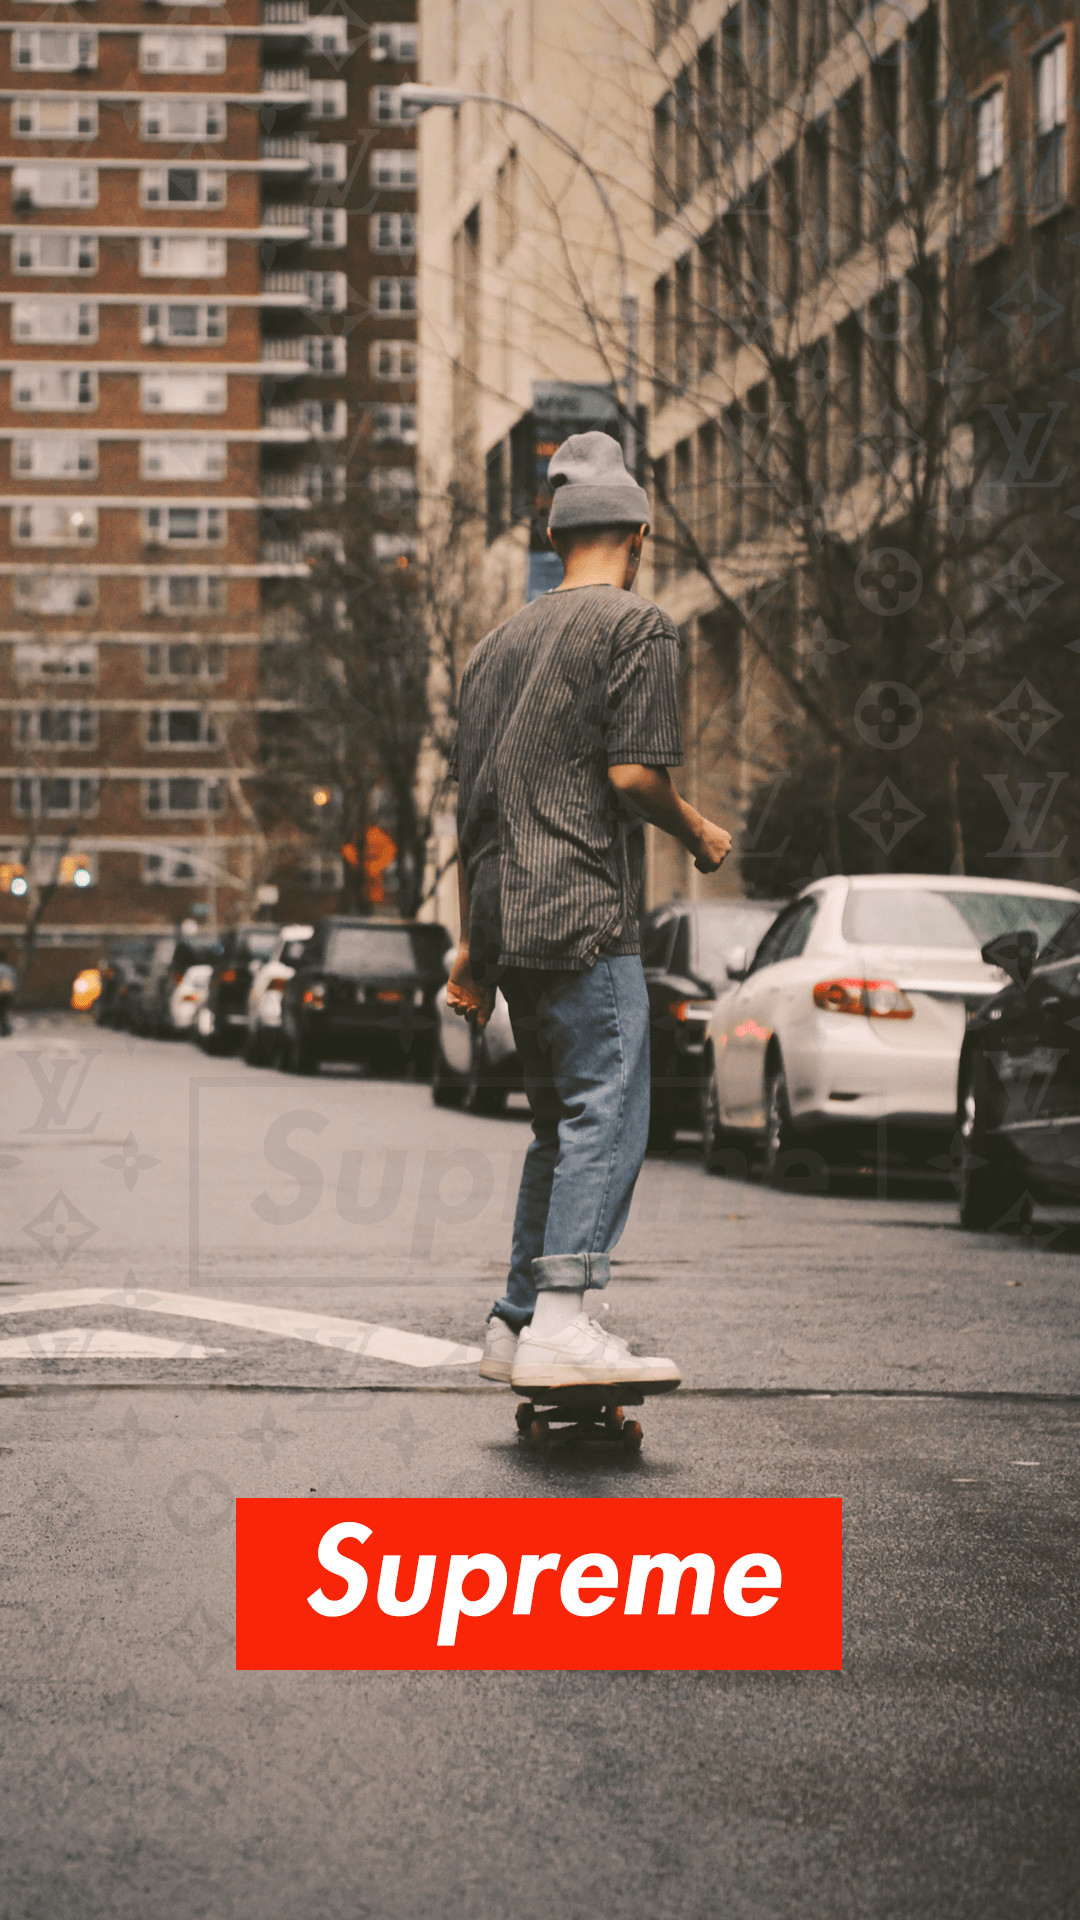 1080x1920 ... Skate board Louis Vuitton Supreme wallpaper ...